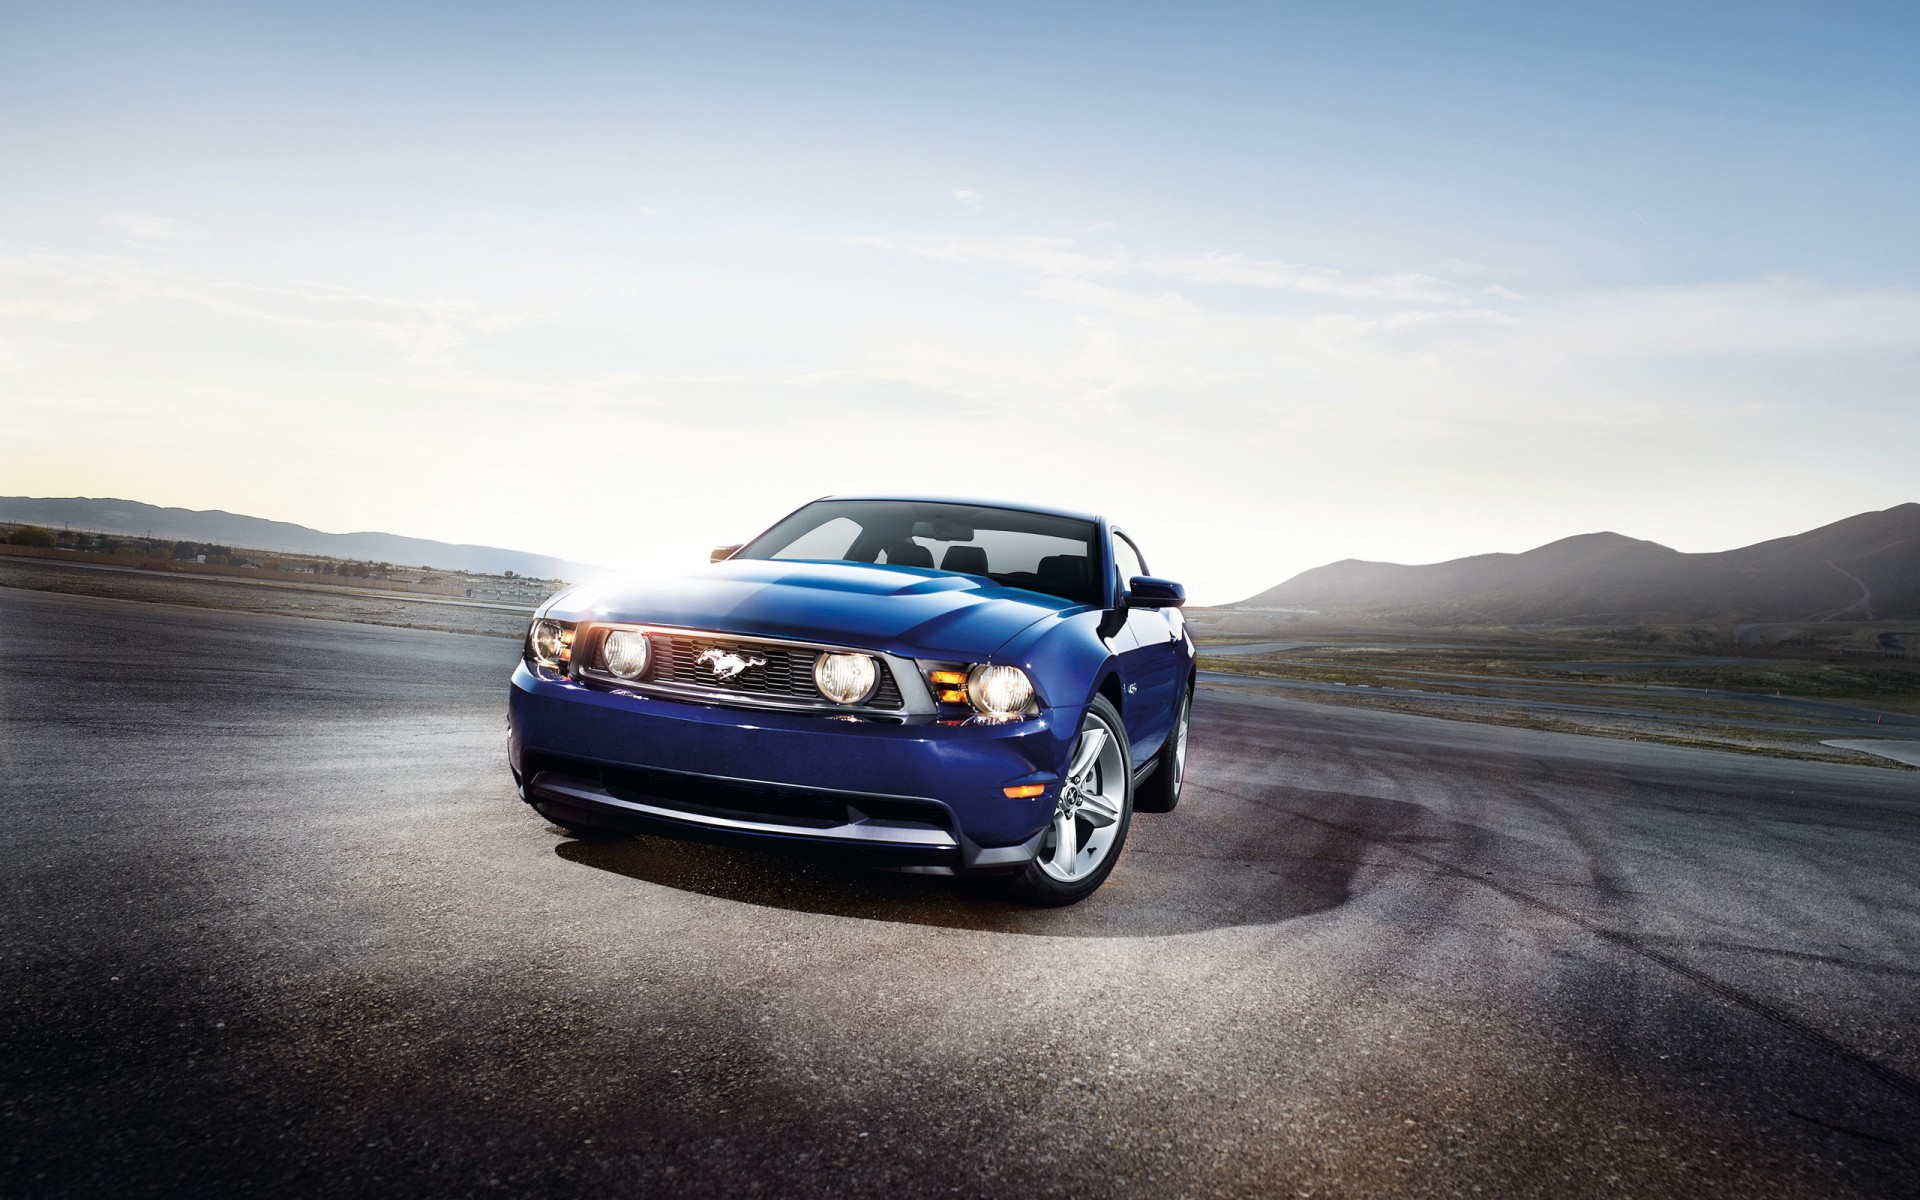 2012 ford mustang shelby gt500 wallpaper hd car - Wallpaper mustang shelby gt500 ...